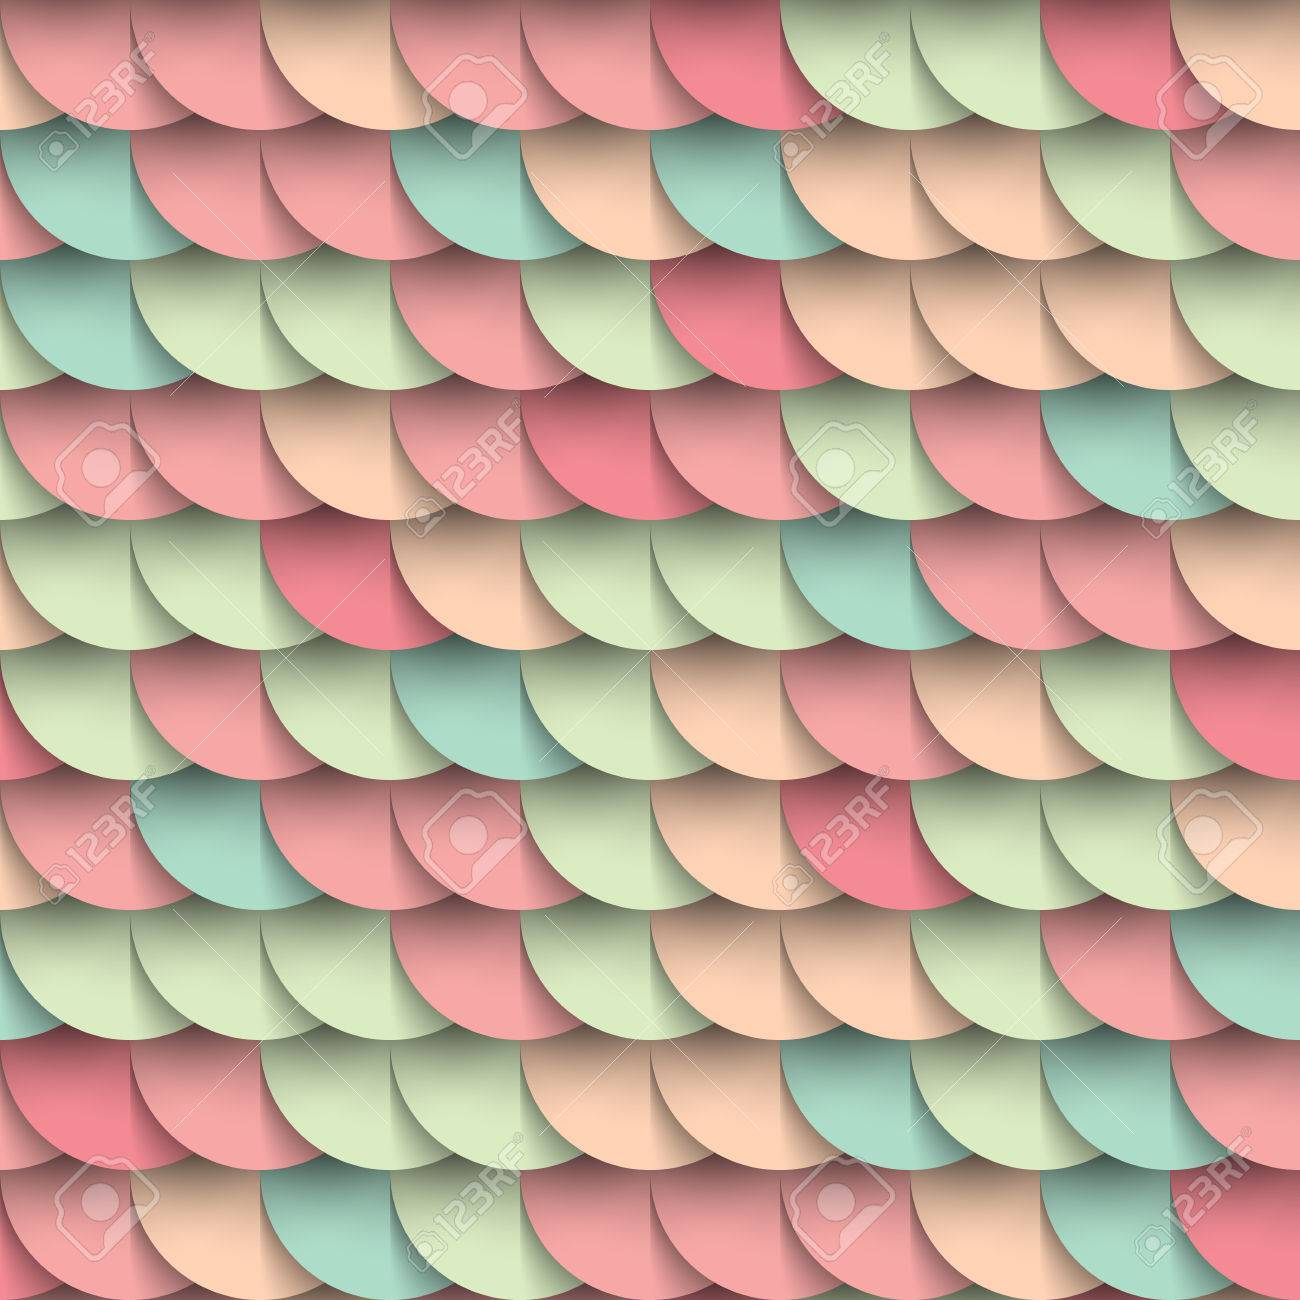 Pastel Shades pastel shades circles geometric shape multicolored seamless